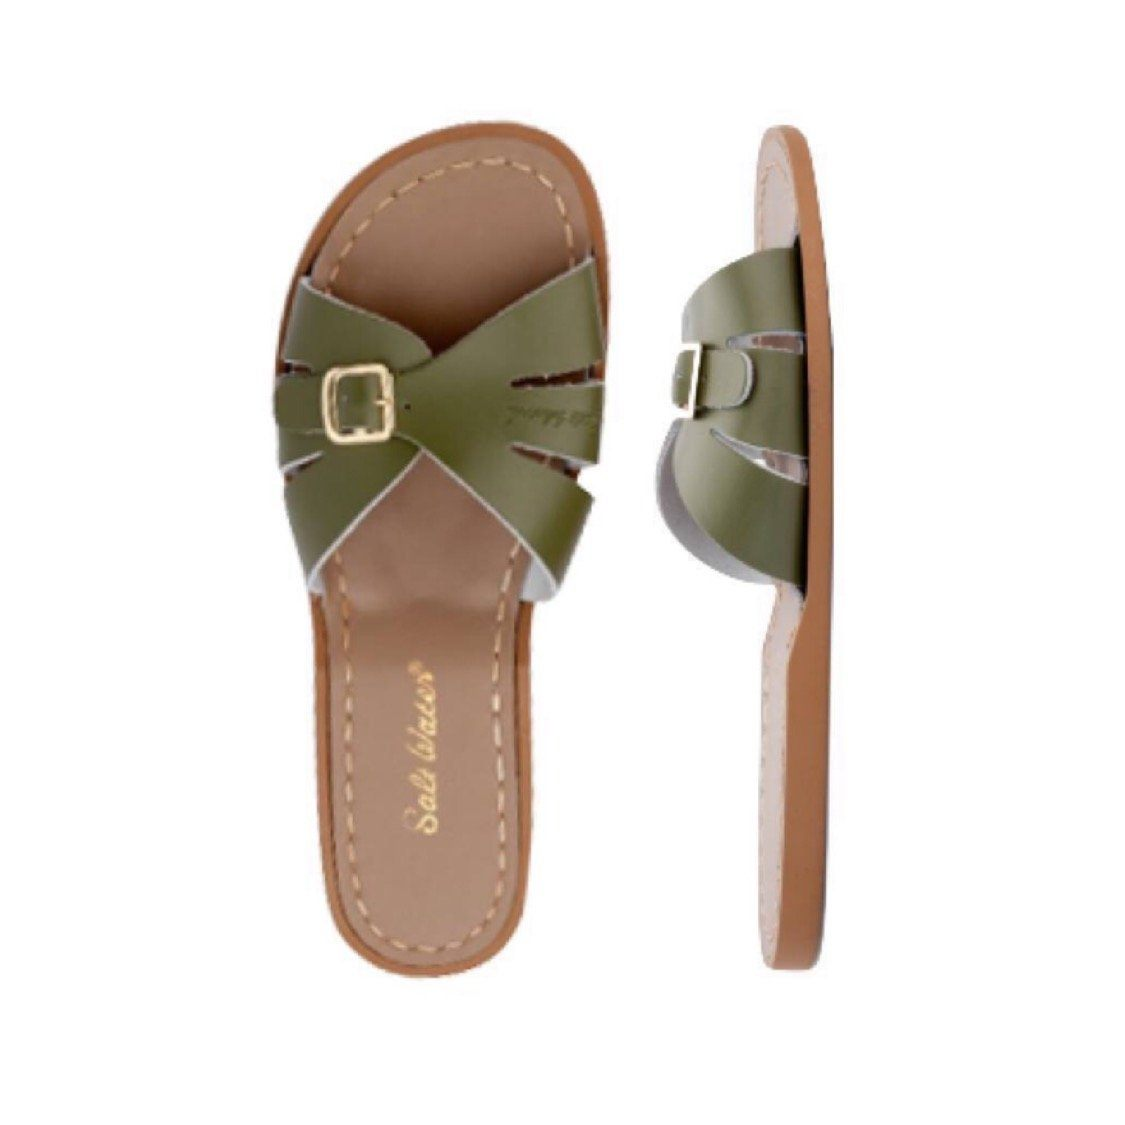 Adult Classic Slide Saltwater Sandals - Olive Sandals Salt Water Sandals